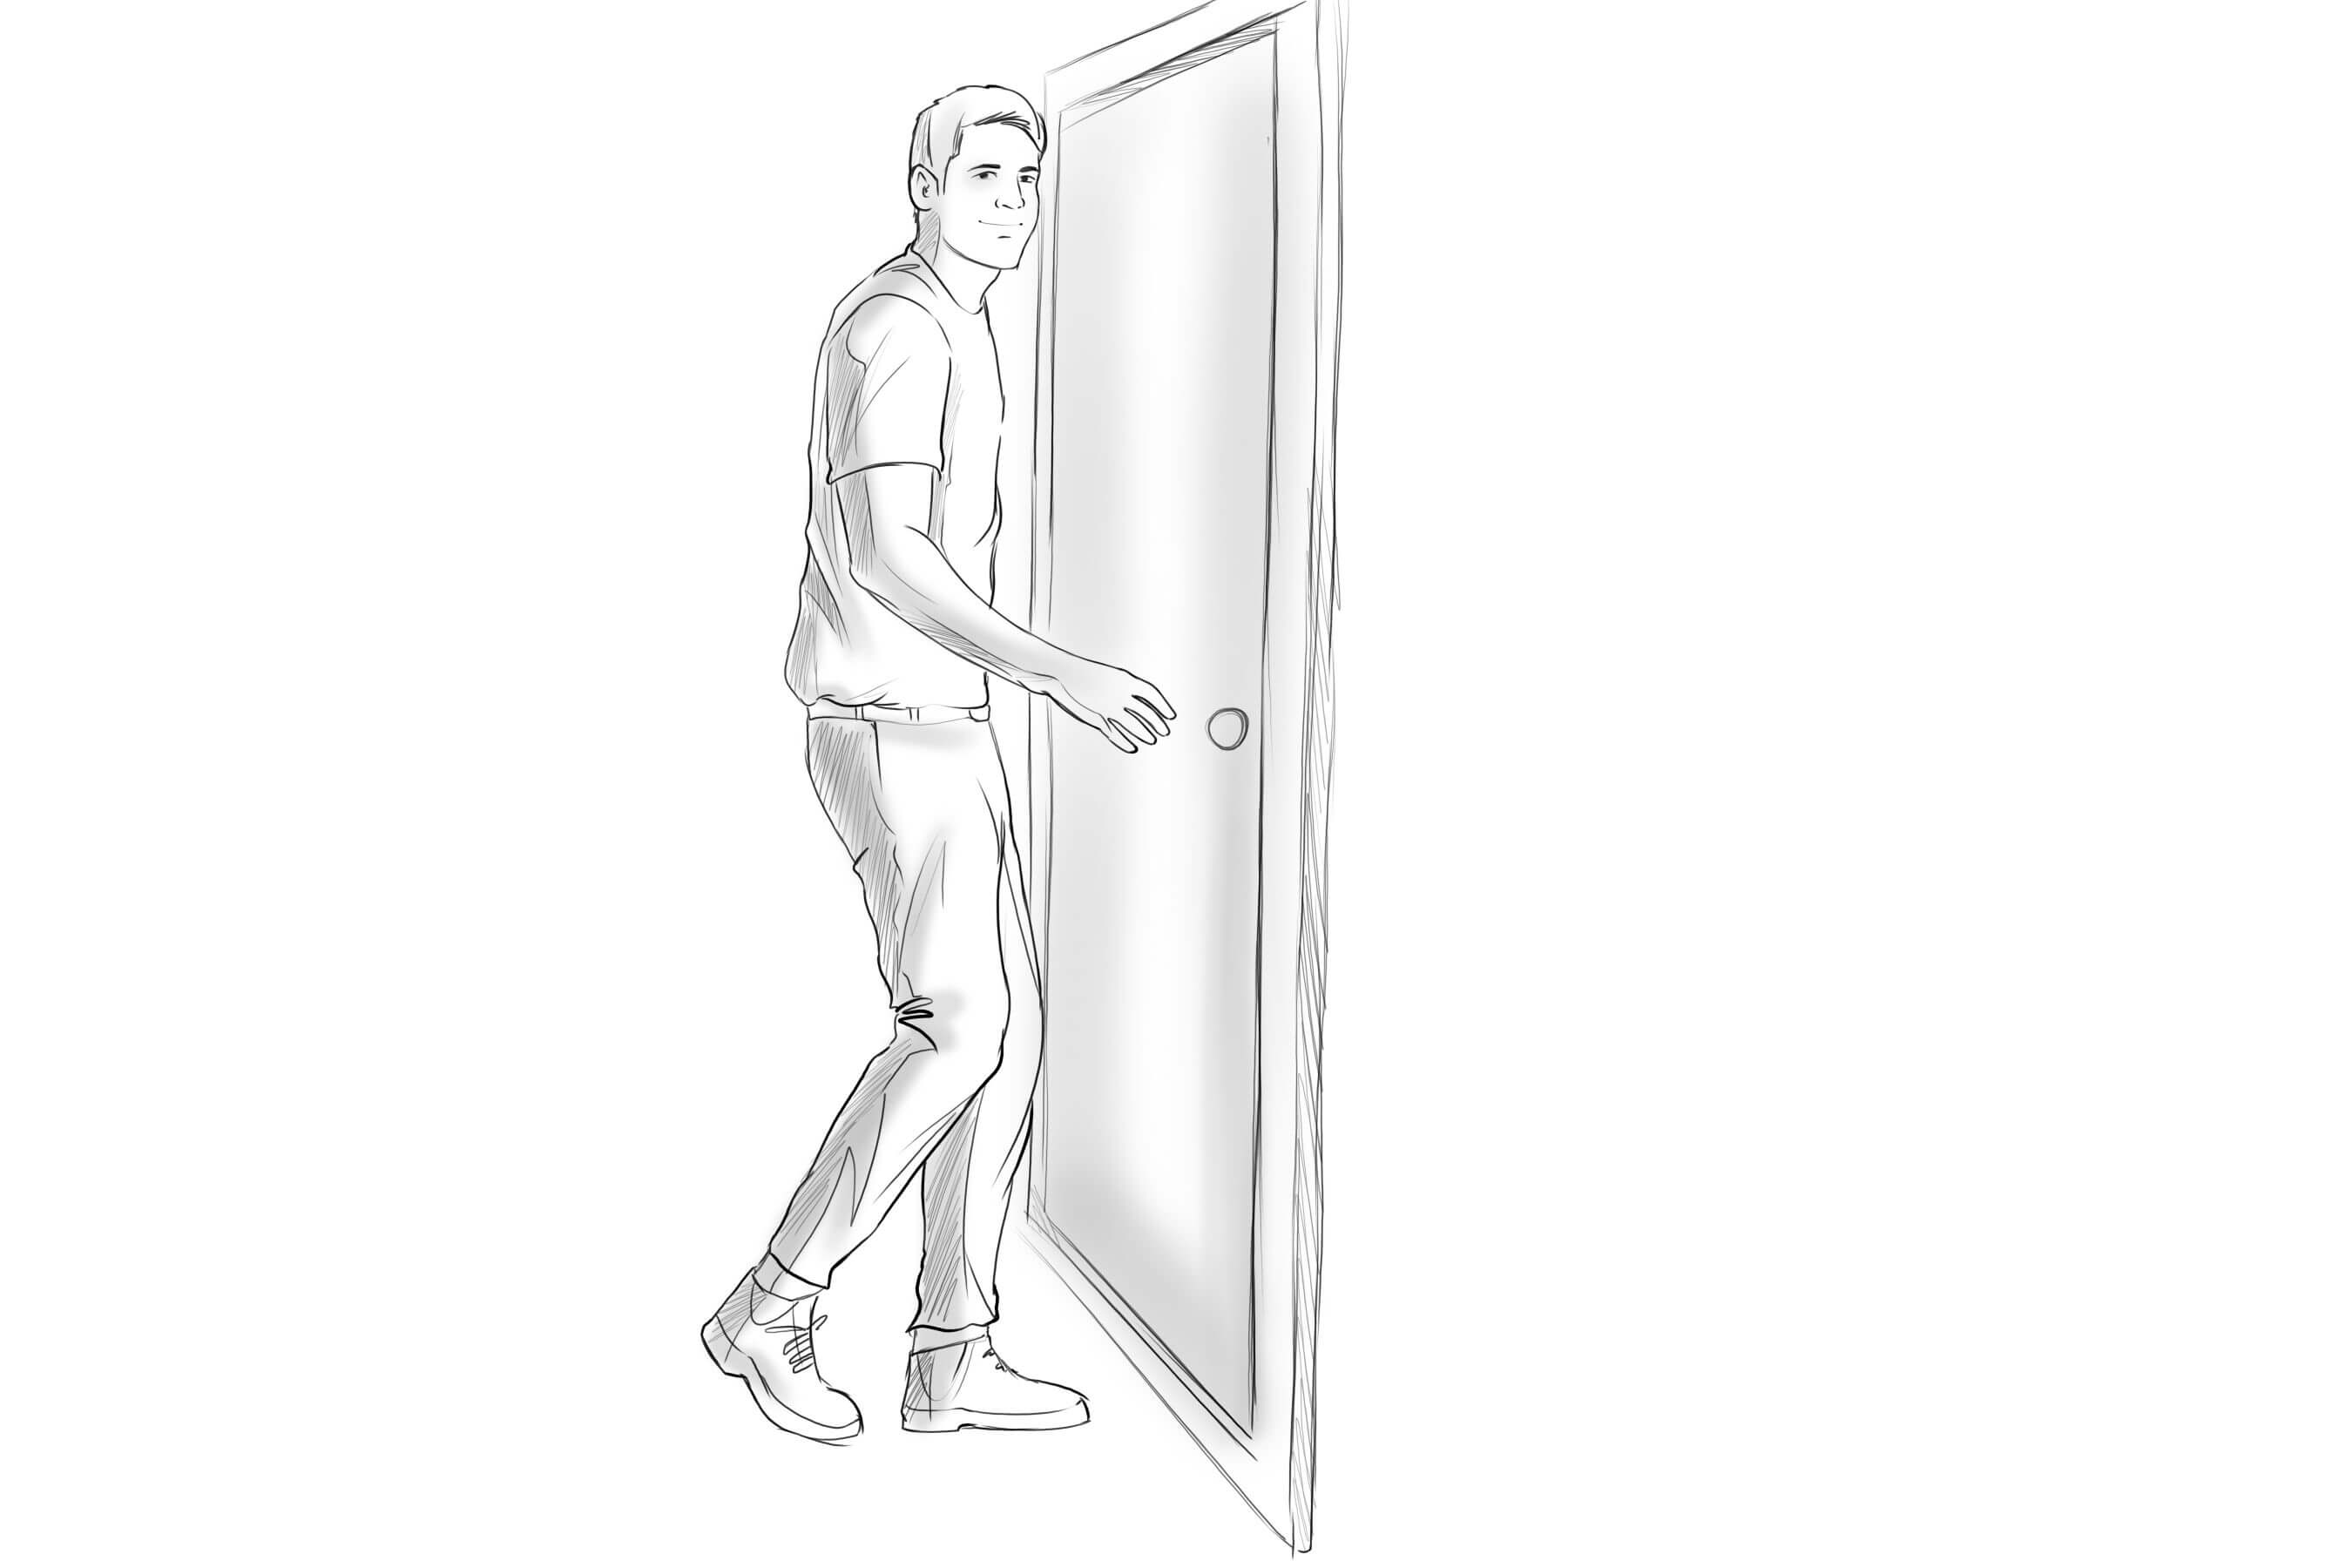 PERSON TAKING A STEP FORWARD OR THROUGH A DOOR